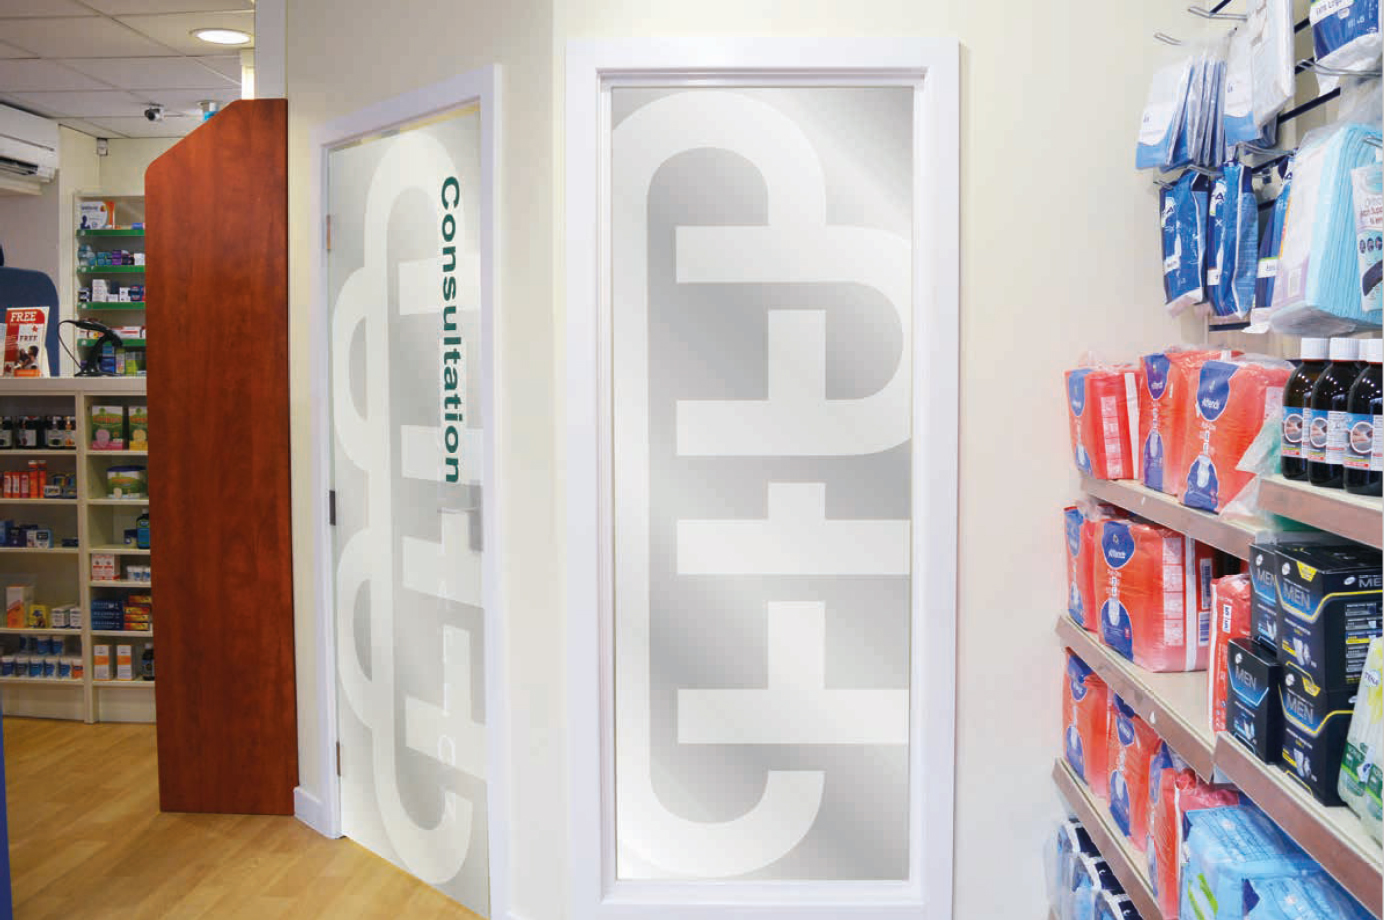 DOSE Design and Marketing O'Brien's Pharmacy Signage Scheme Warburtons Interior